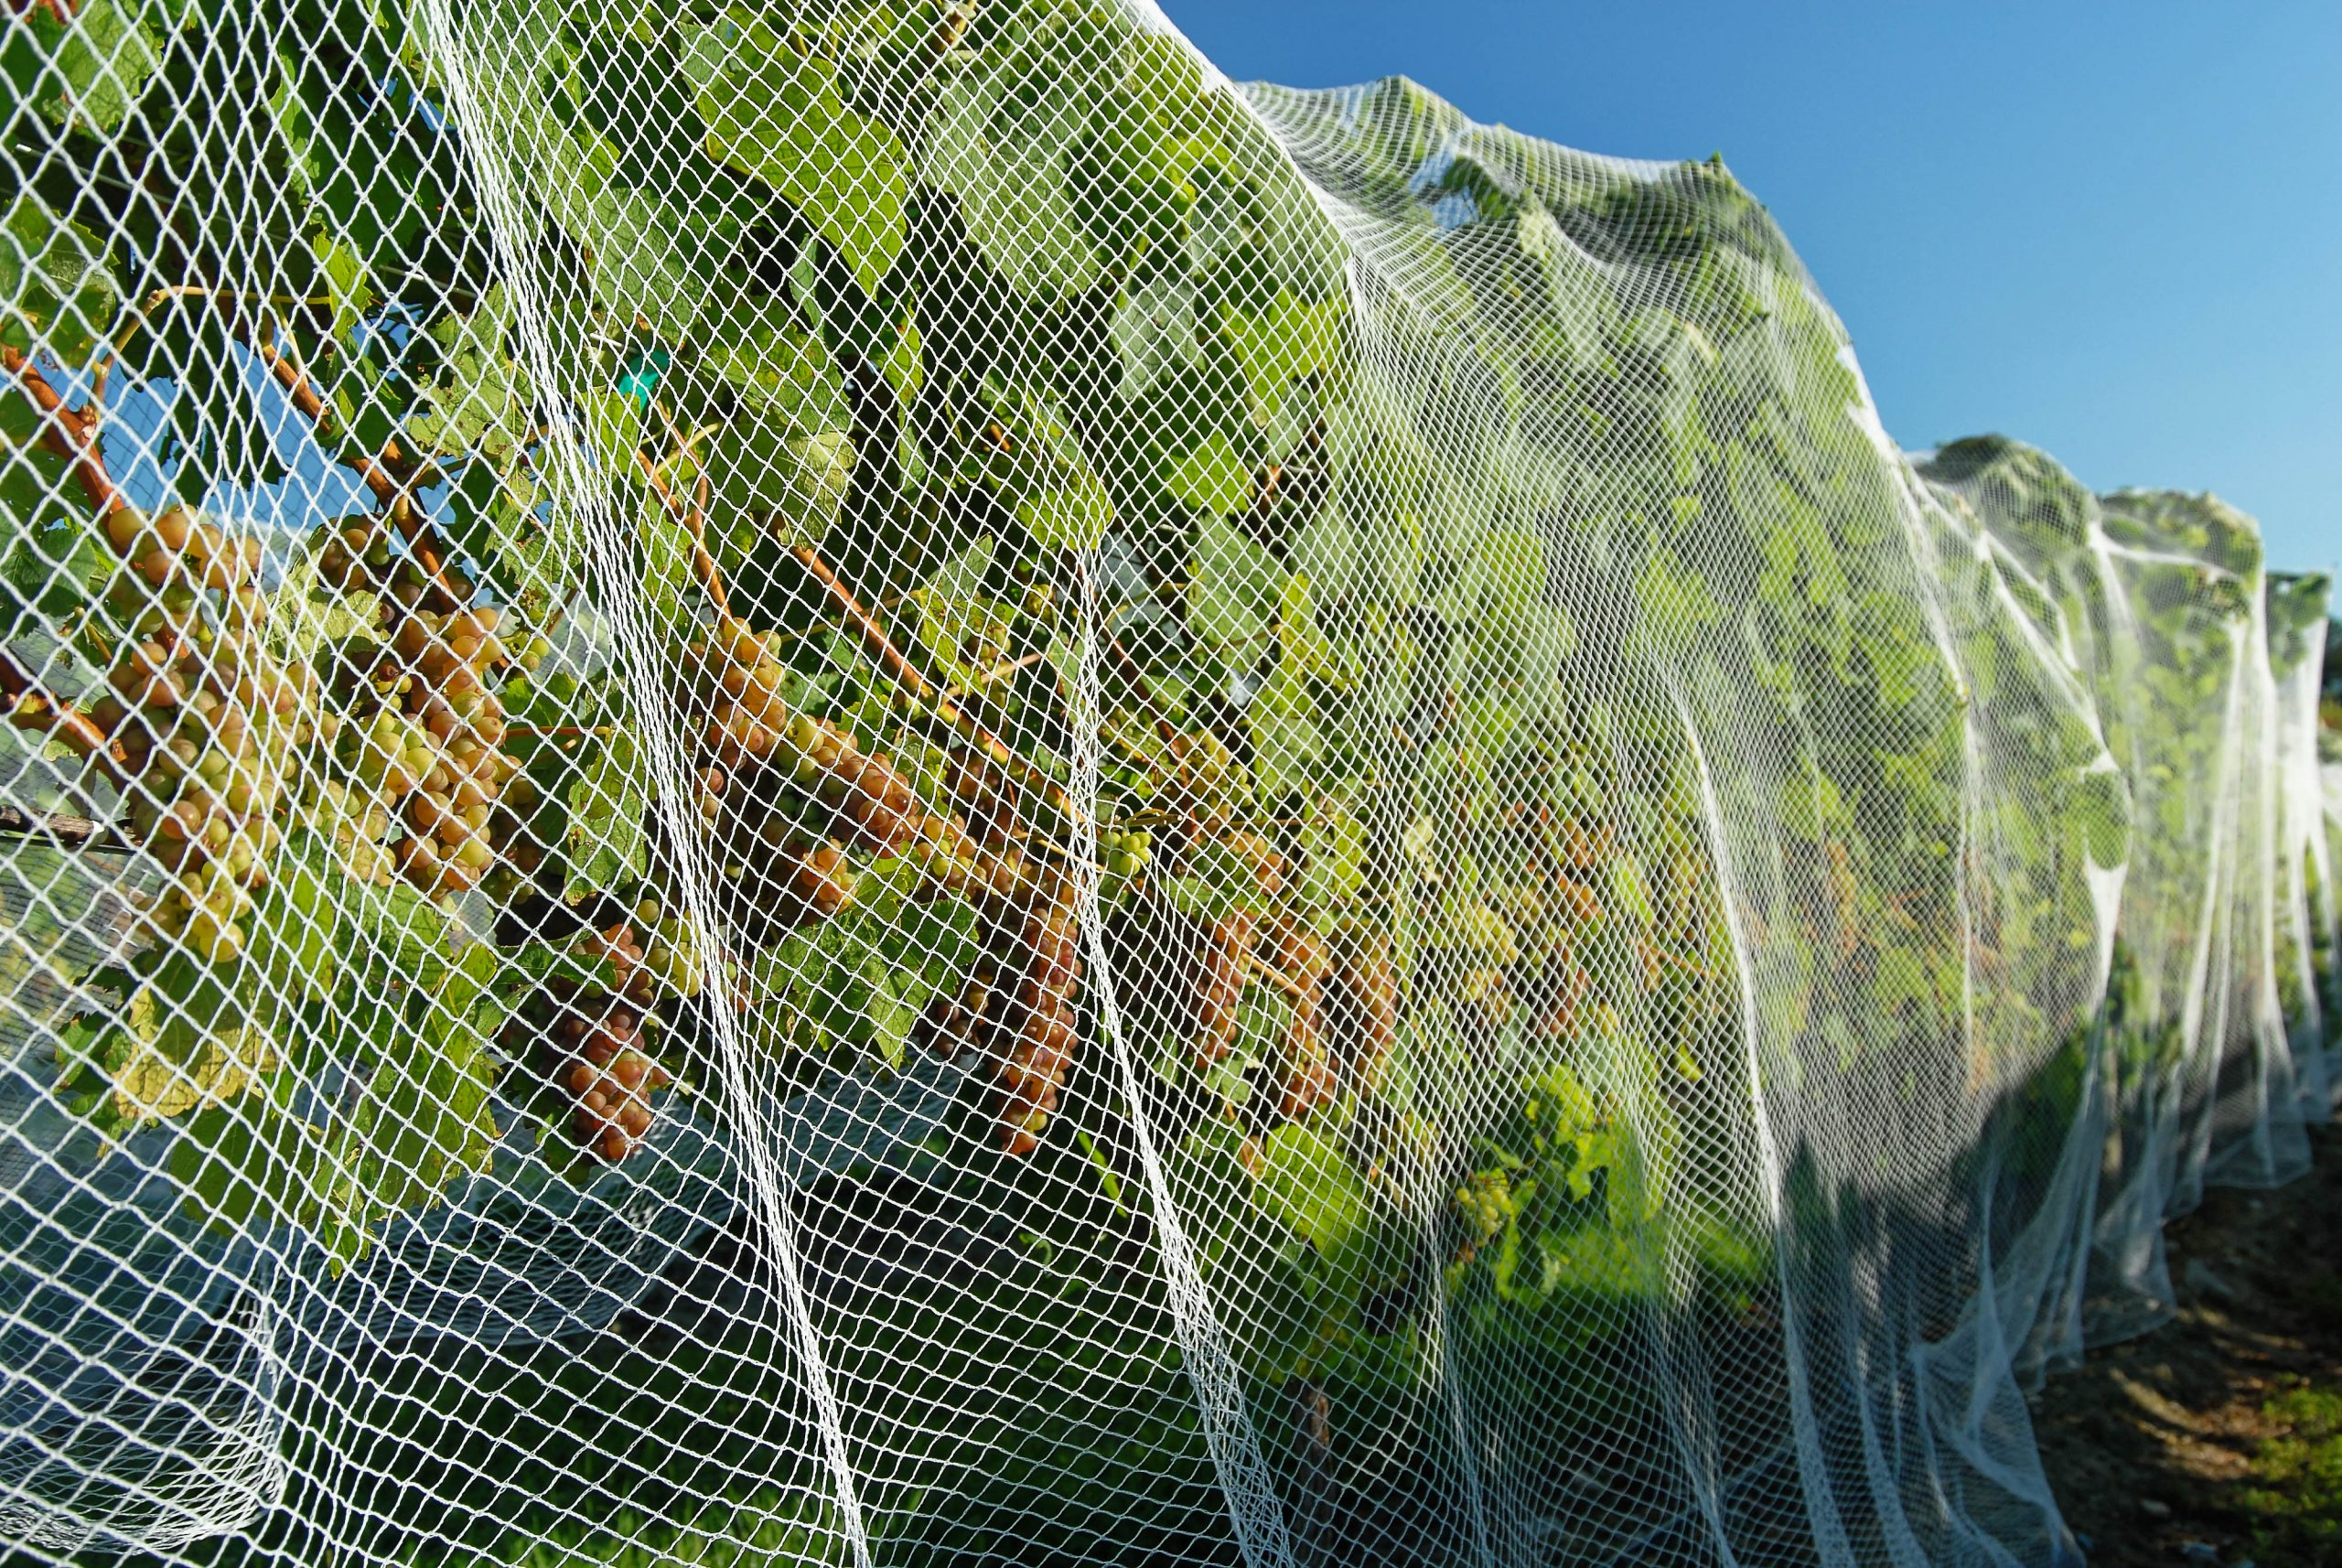 Horticulture and Agriculture netting by Quins Sports